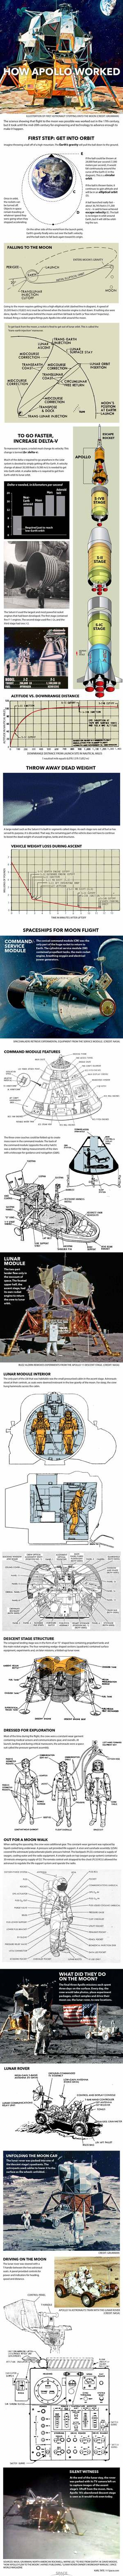 "NASA's Apollo moon landings were audacious feats of engineering. <a href=""http://www.space.com/26572-how-it-worked-the-apollo-spacecraft-infographic.html"">See how the amazing Apollo moon landings worked in this Space.com infographic</a>."